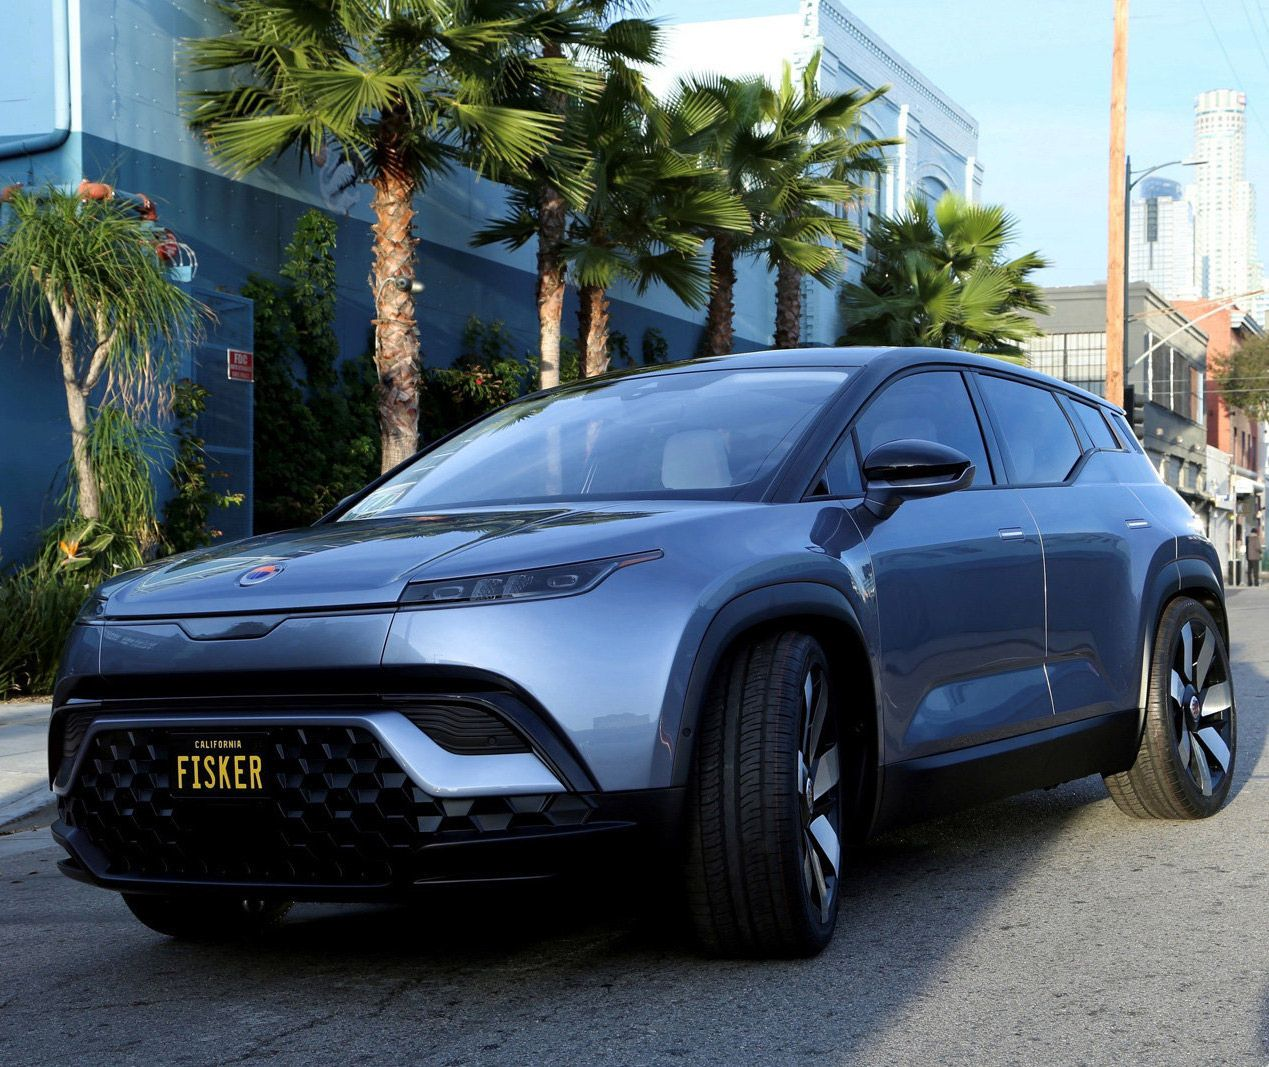 Electric Fisker Ocean SUV debuts at CES 2020, has full